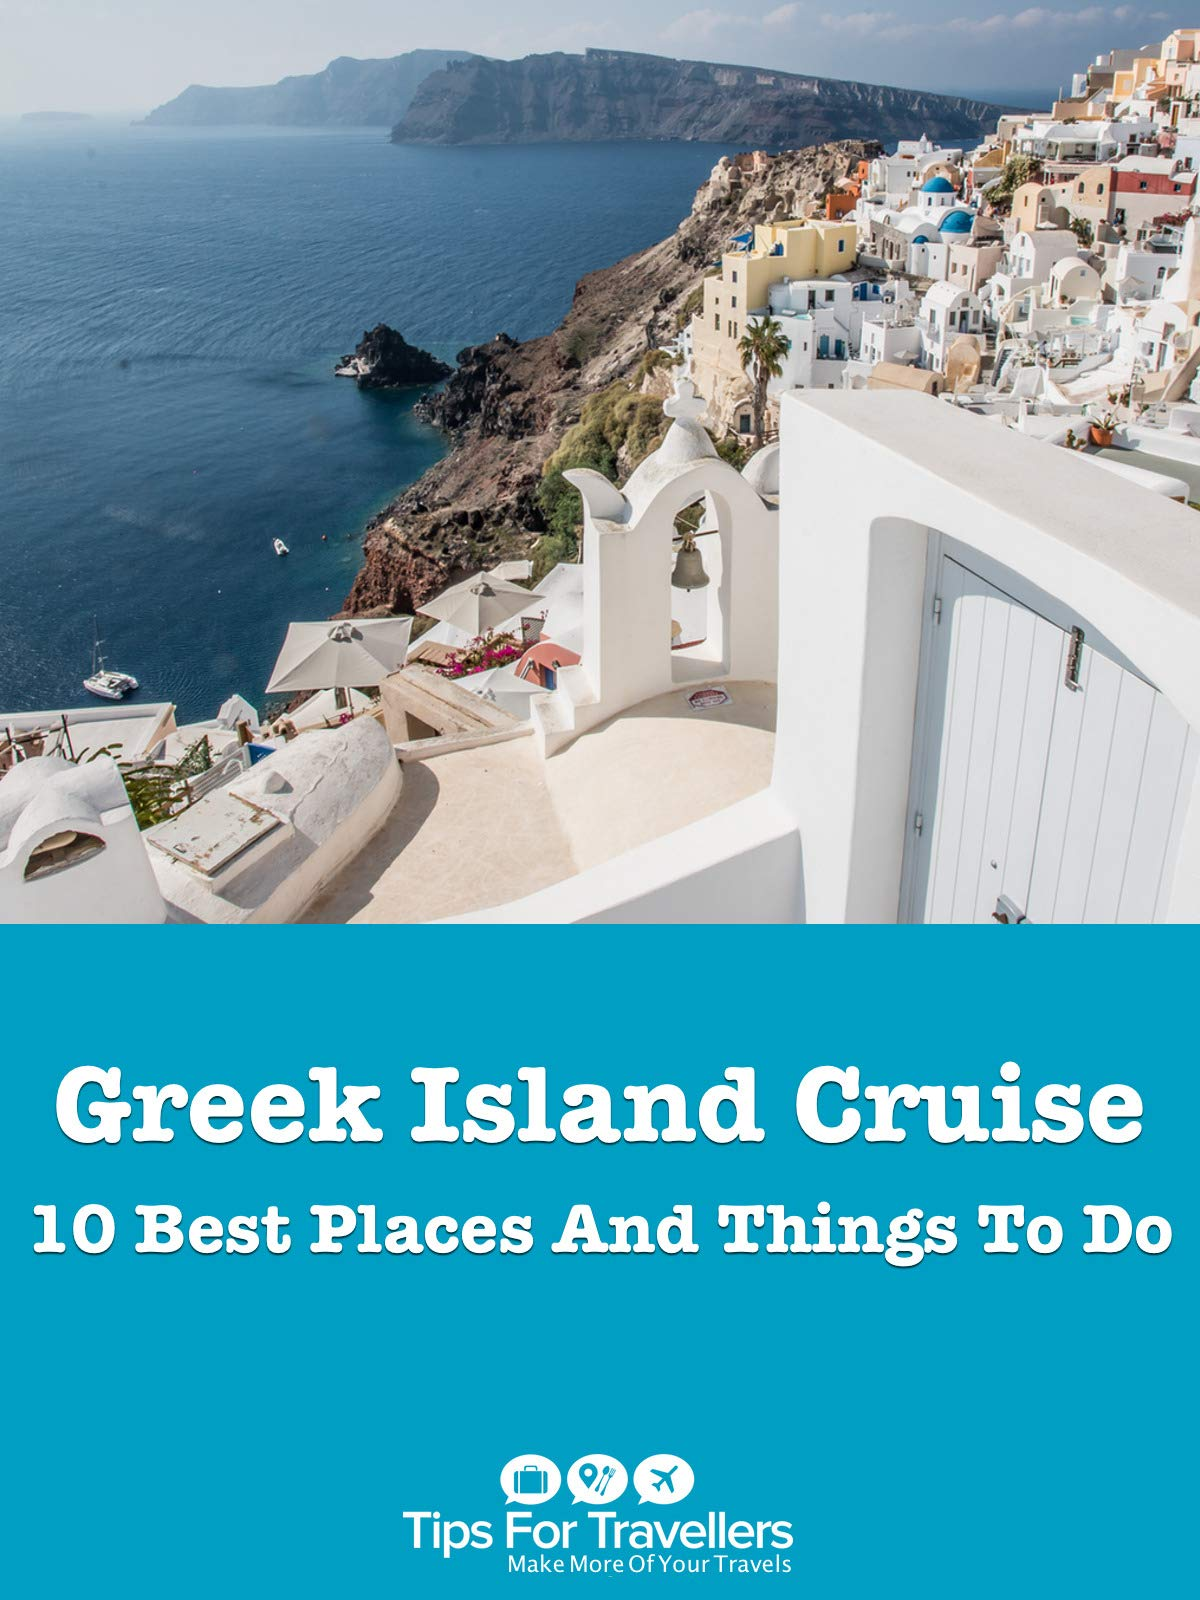 Clip: Greek Island Cruise. 10 Best Places And Things To Do